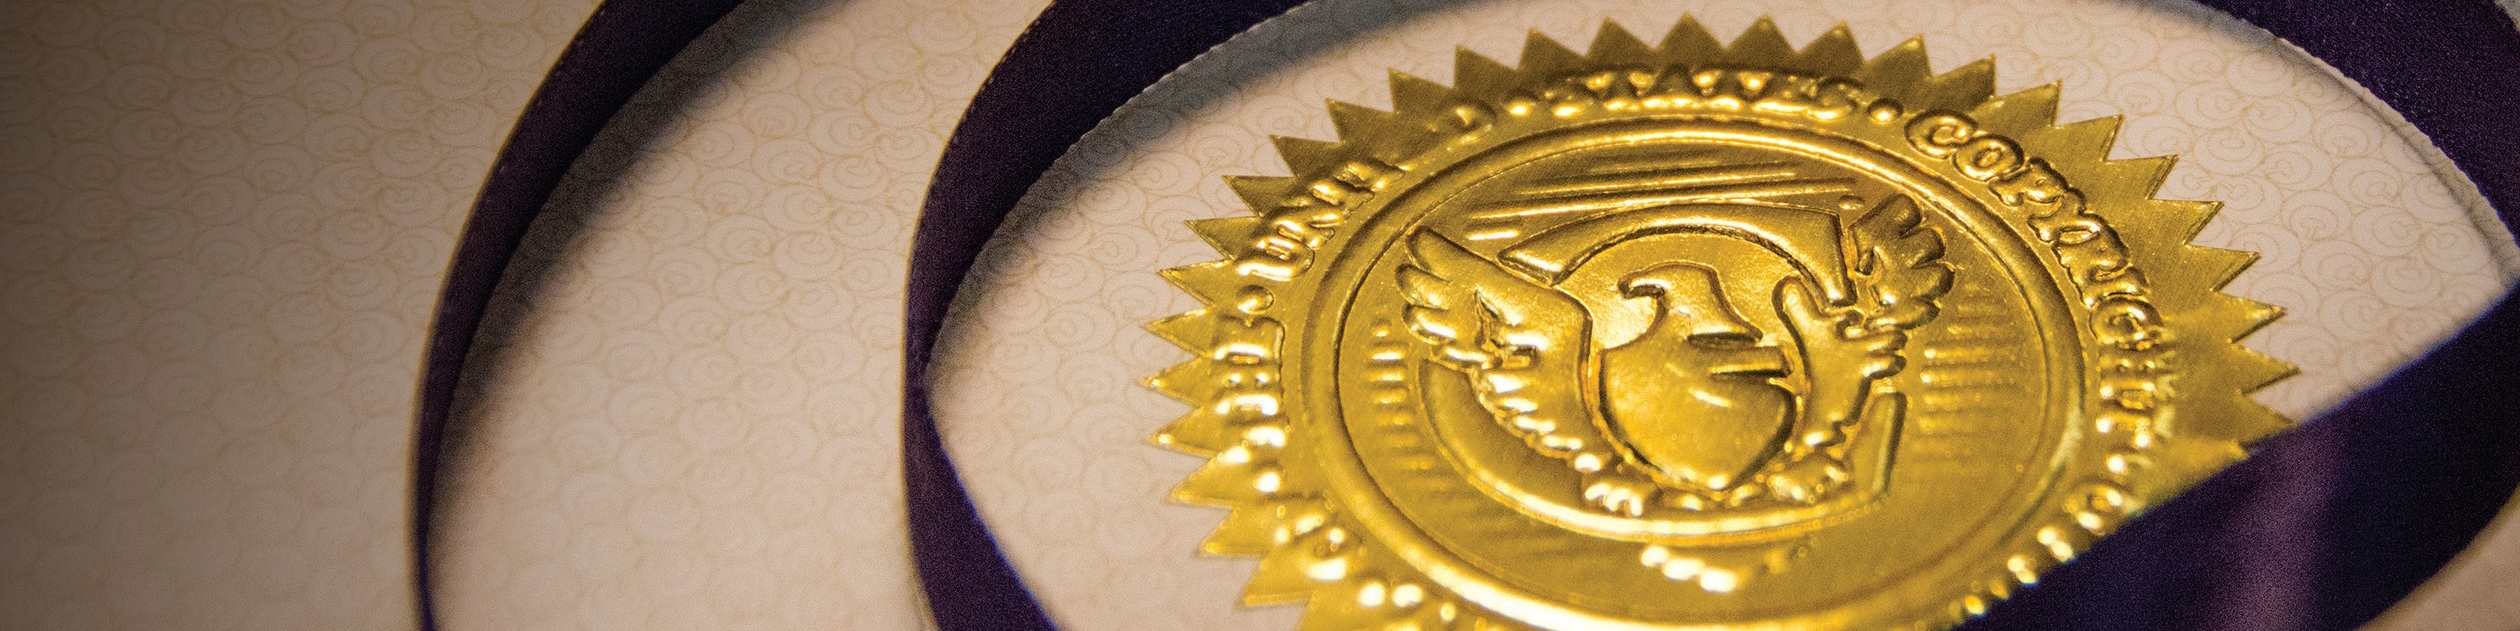 US Copyright Office Announces Appointments of Copyright Claims Board Officers